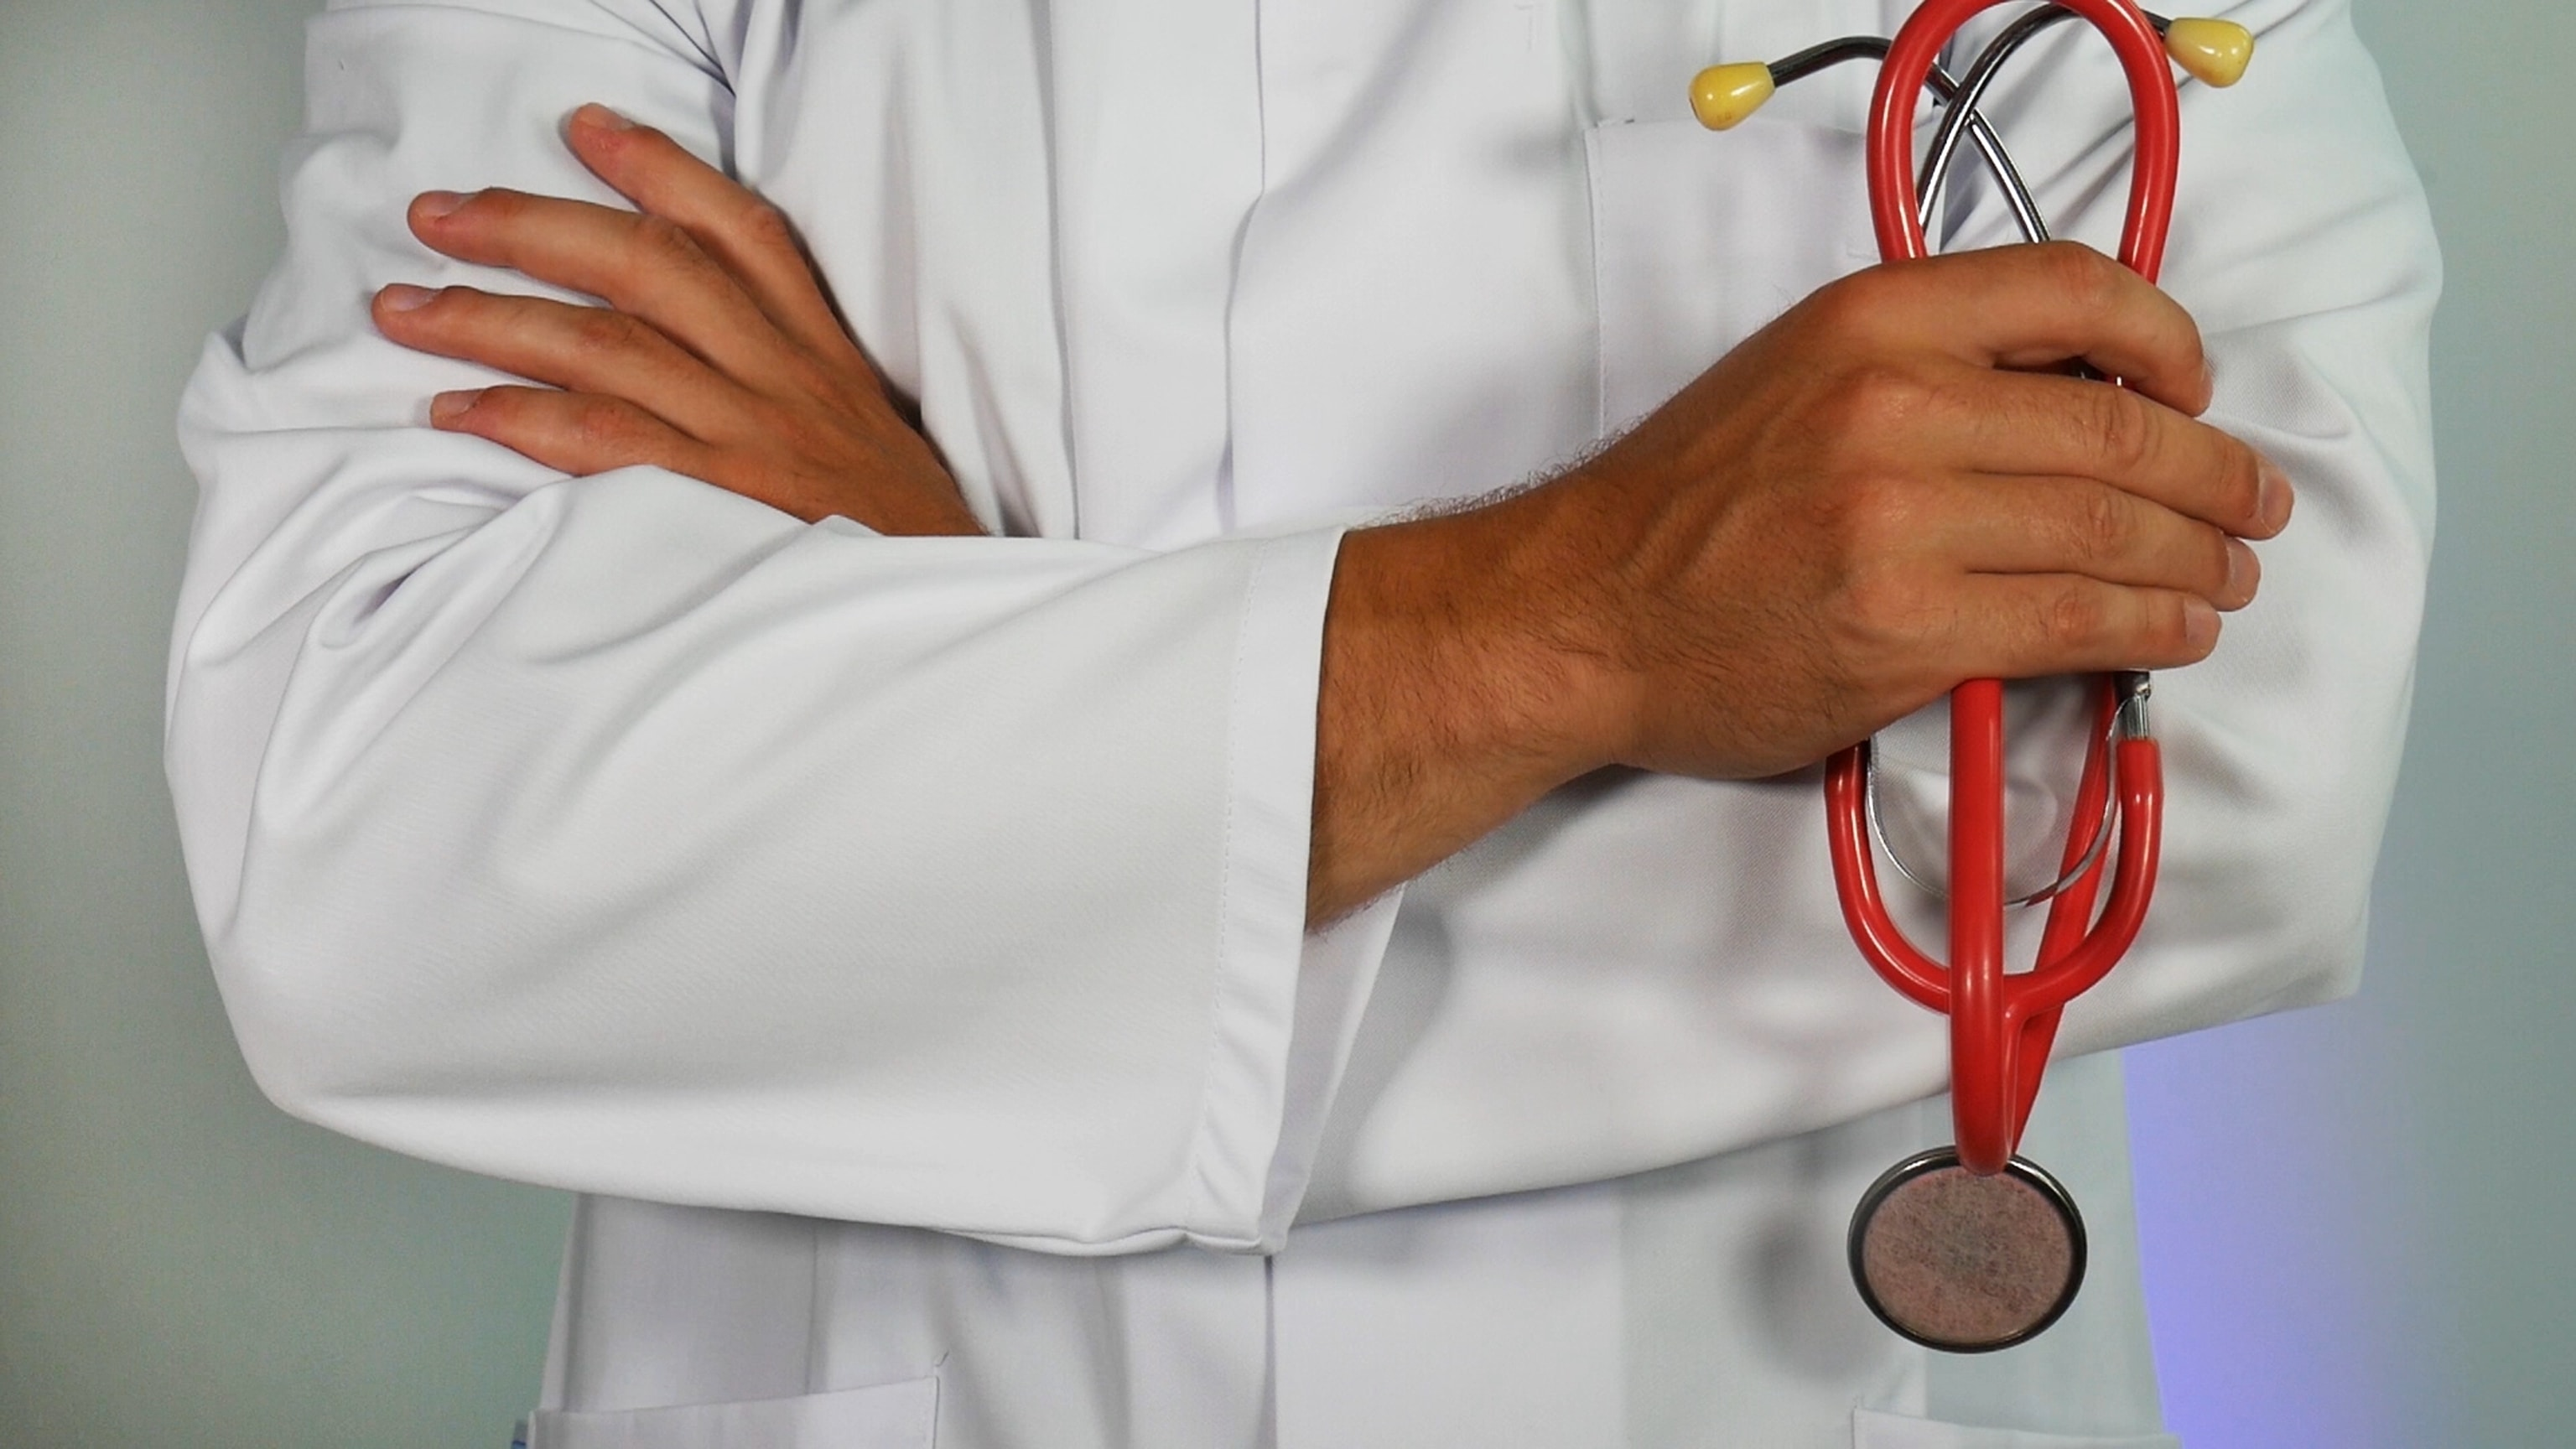 Doctor in white lab coat with arms crossed, holding a red stethoscope.